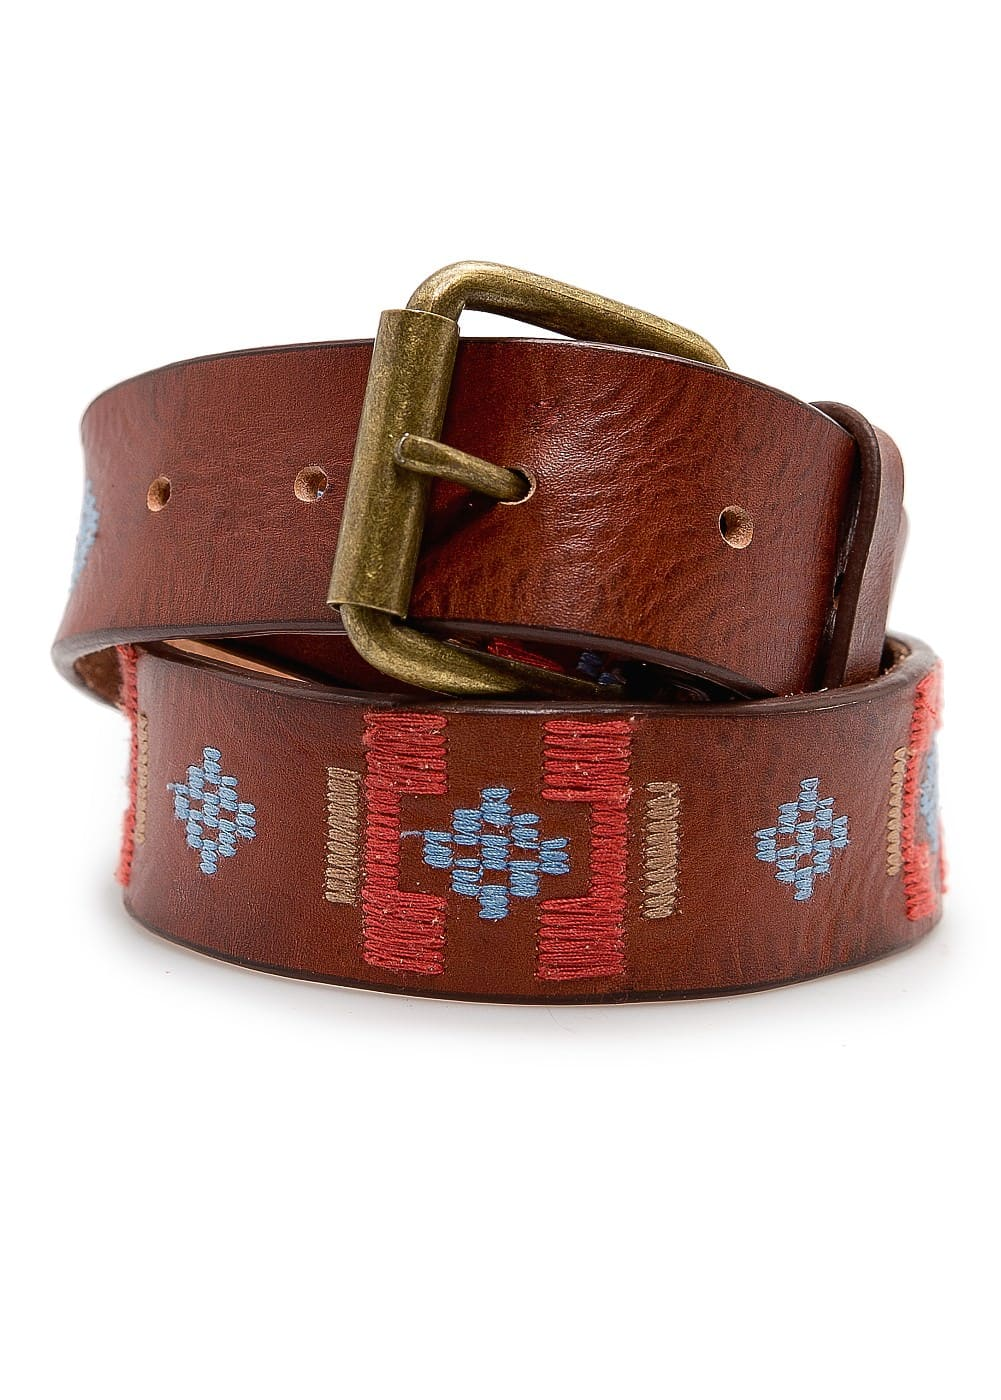 Ethnic leather belt